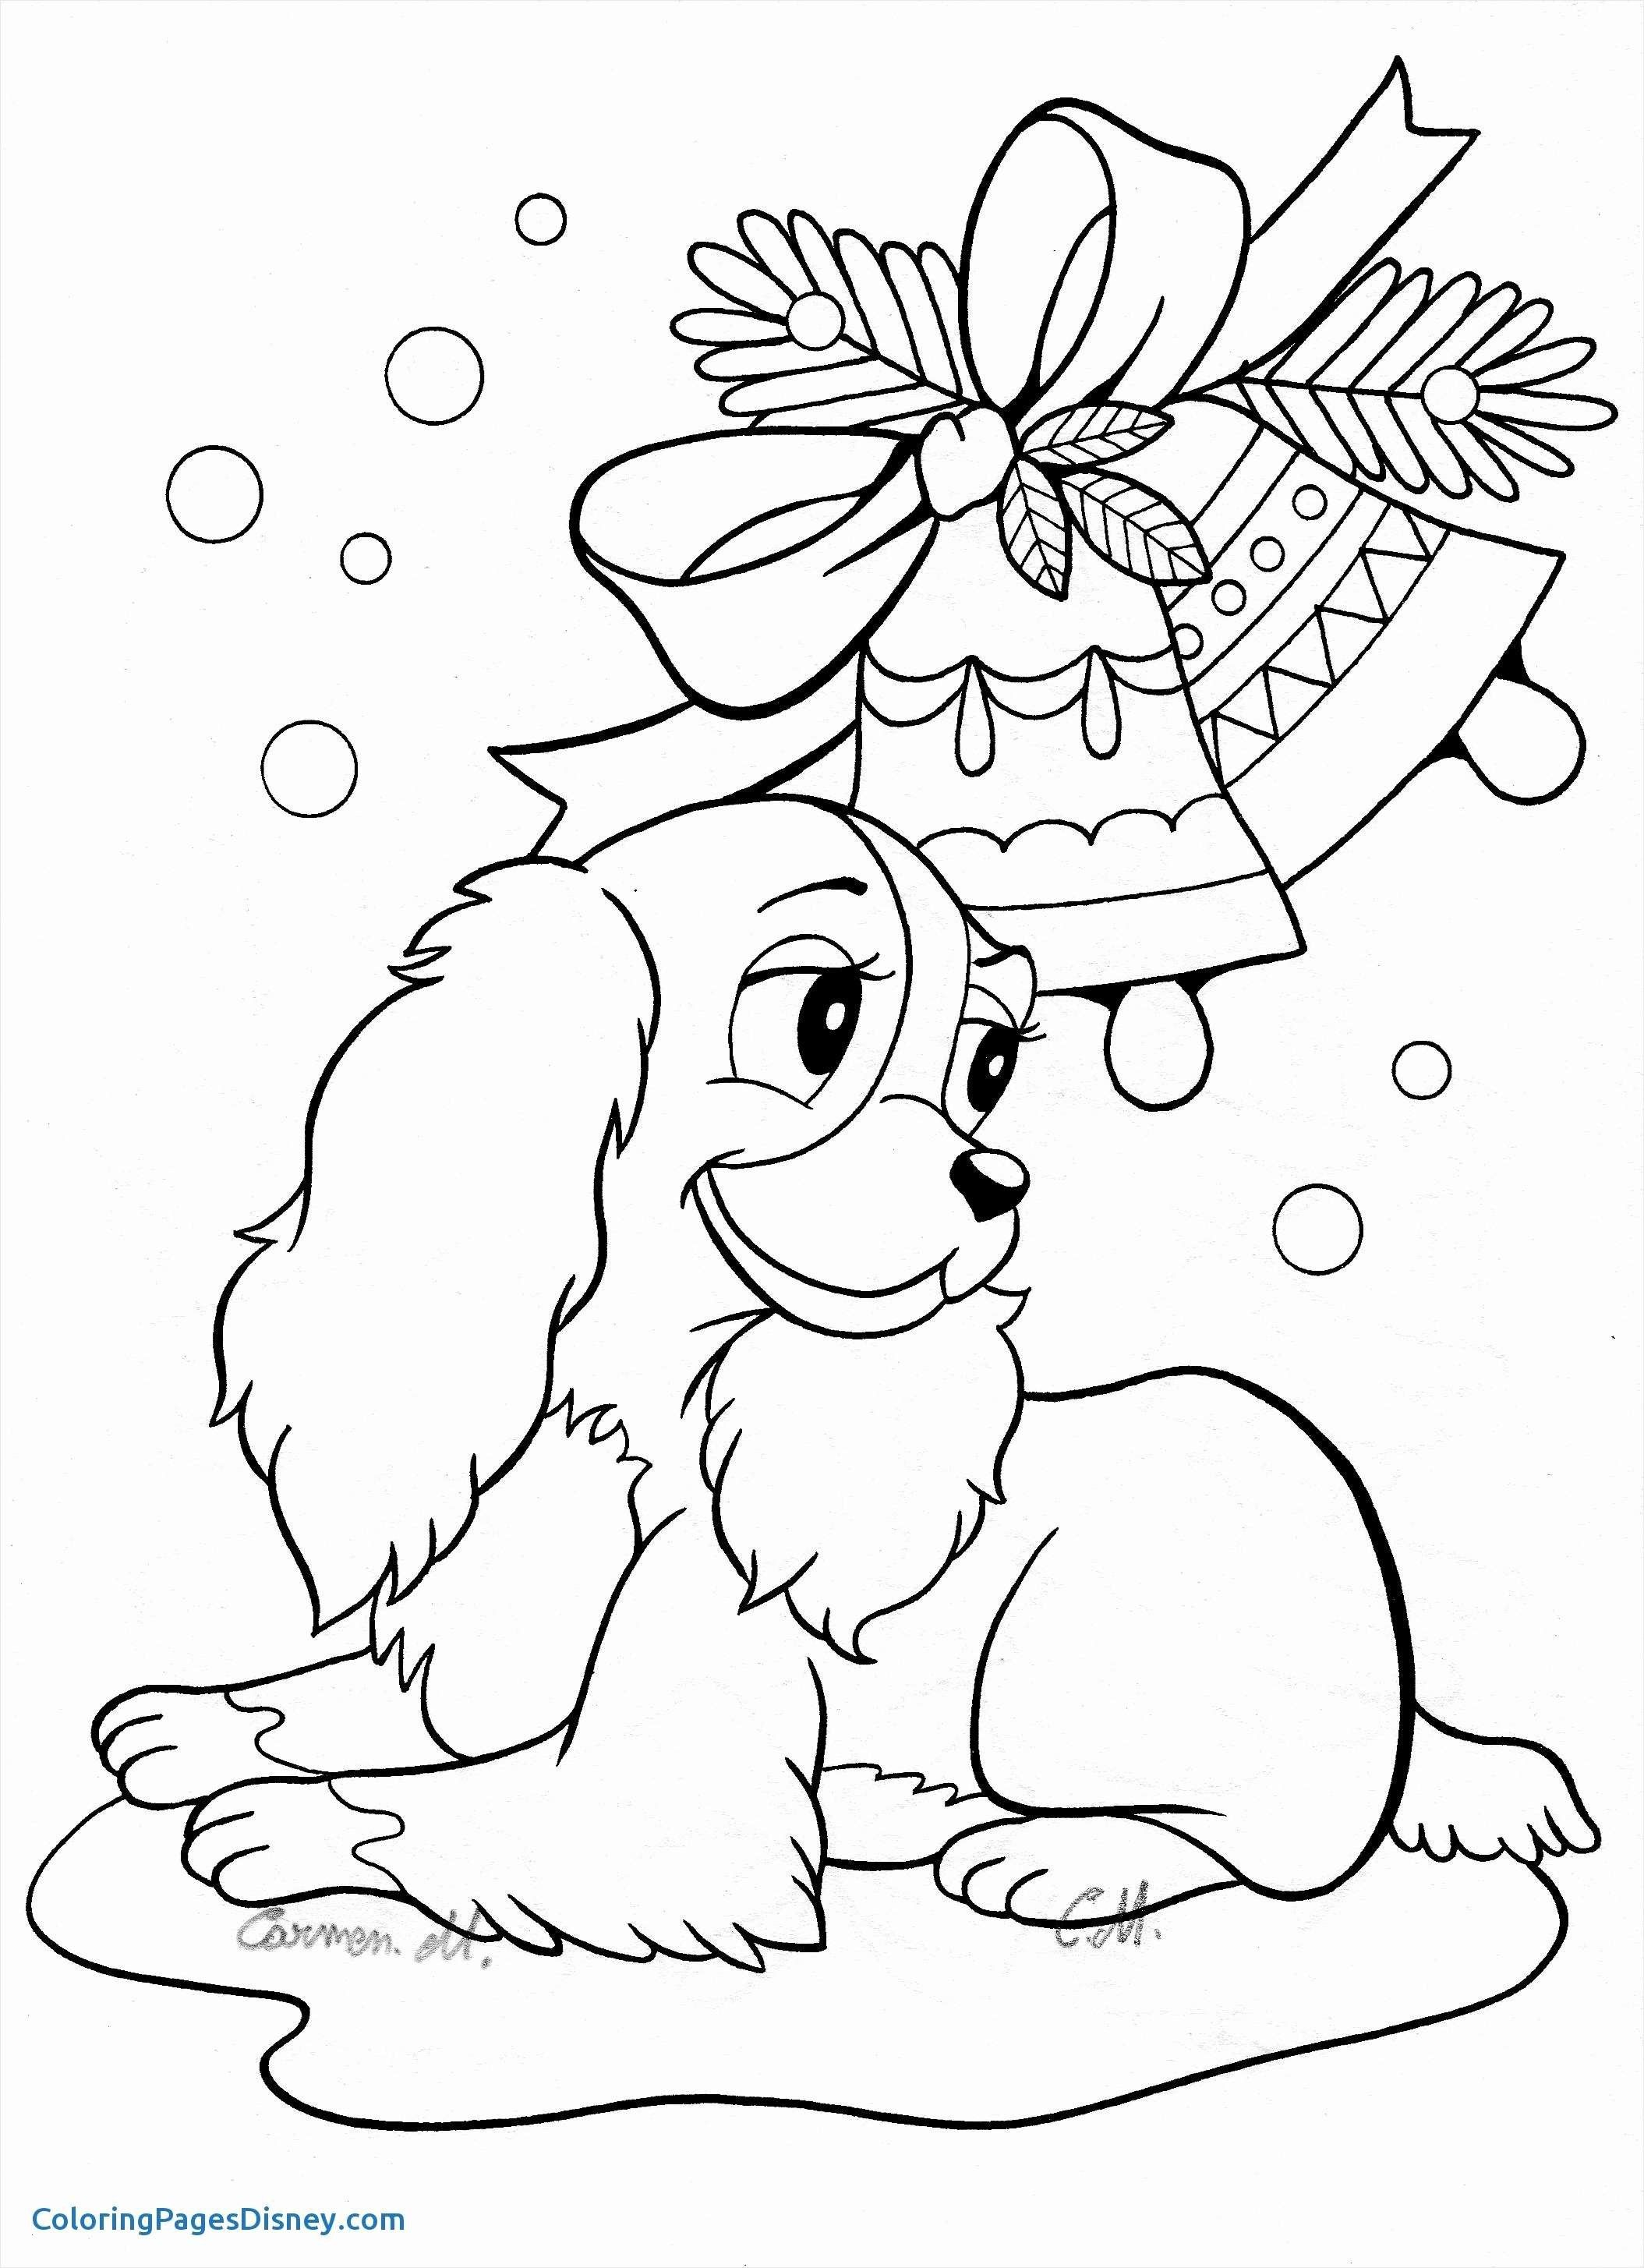 Princess Ariel Coloring Pages Free From The Thousands Of Images On Line About Printable Christmas Coloring Pages Mermaid Coloring Pages Disney Coloring Pages